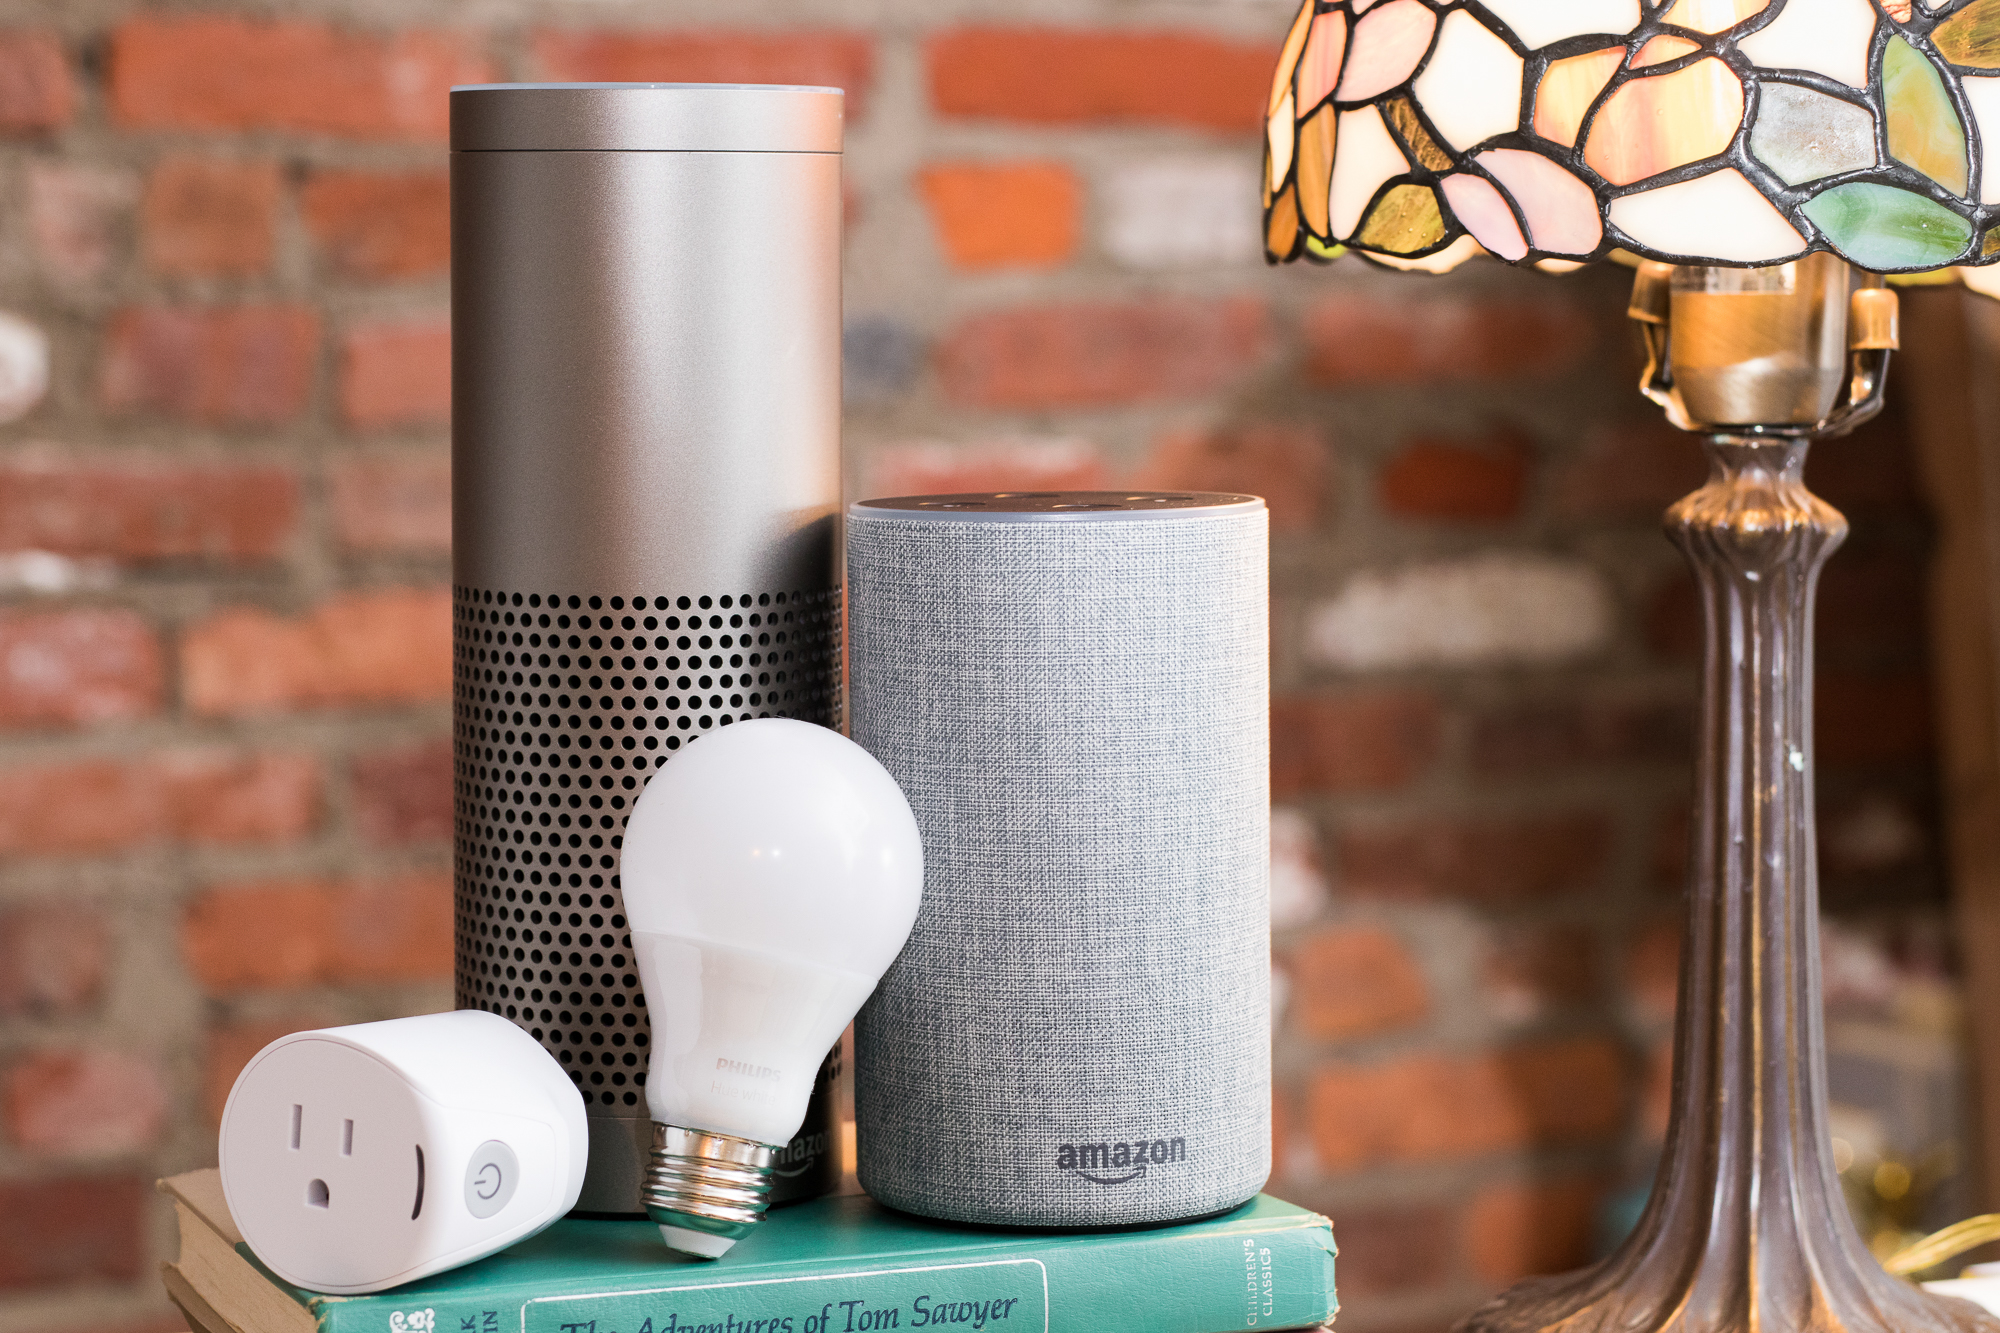 The Best Alexa Compatible Smart Home Devices For Amazon Echo